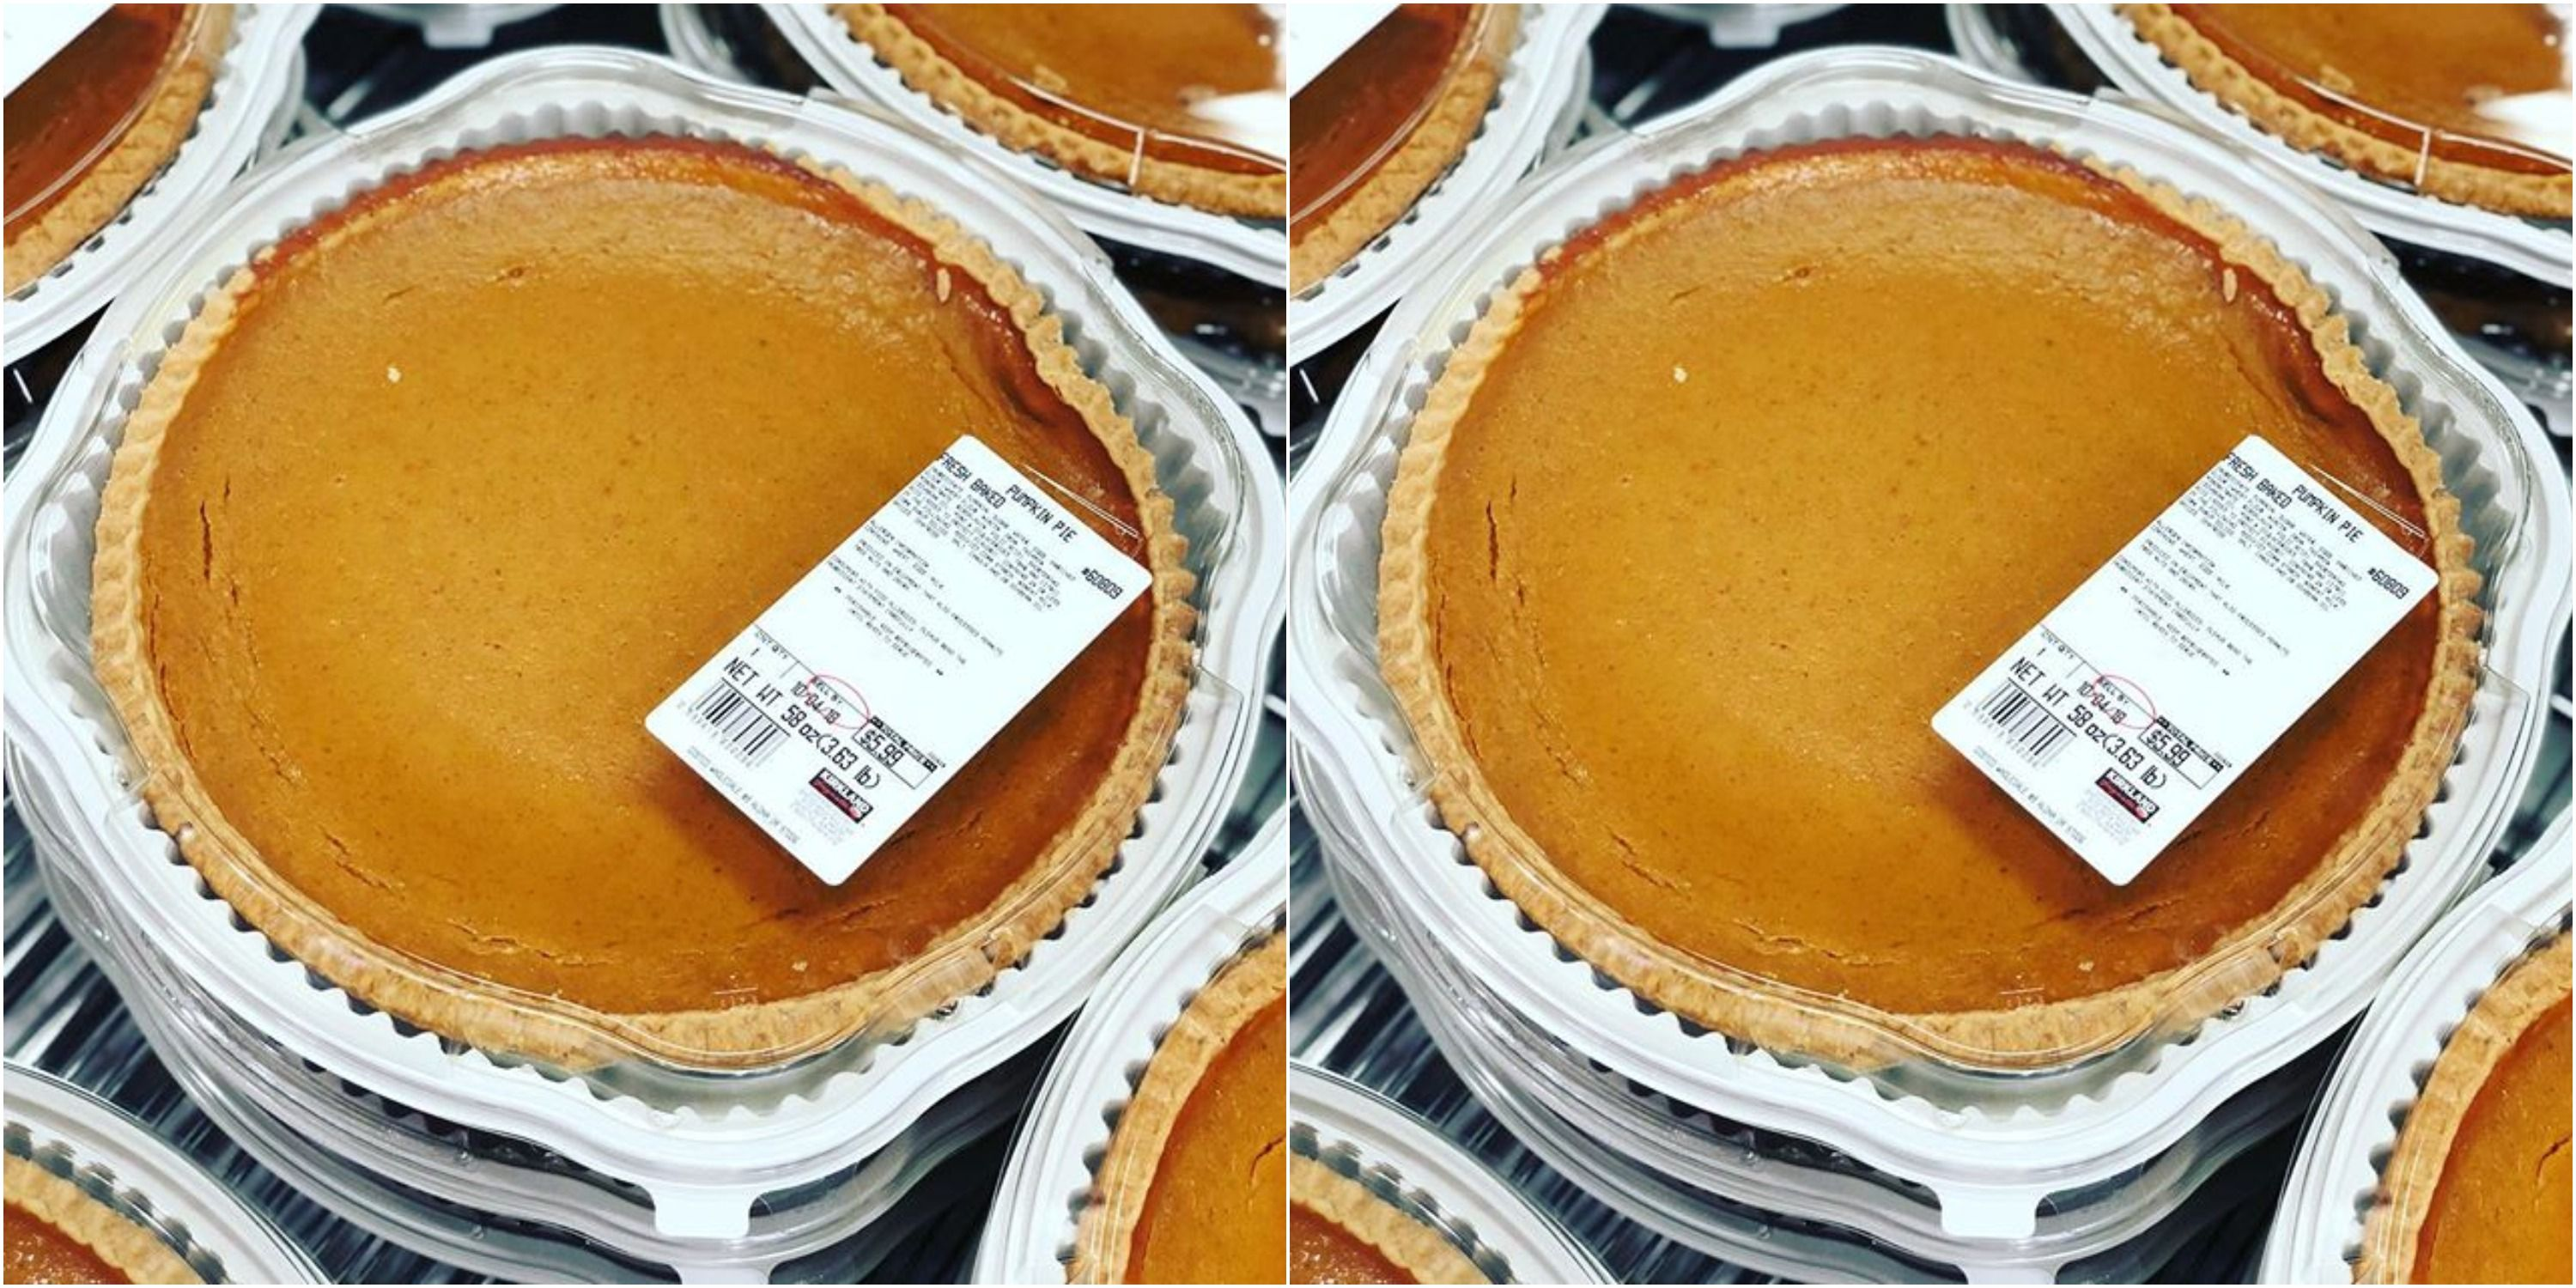 Costco Is Already Selling Pumpkin Pie And It's Not Even October